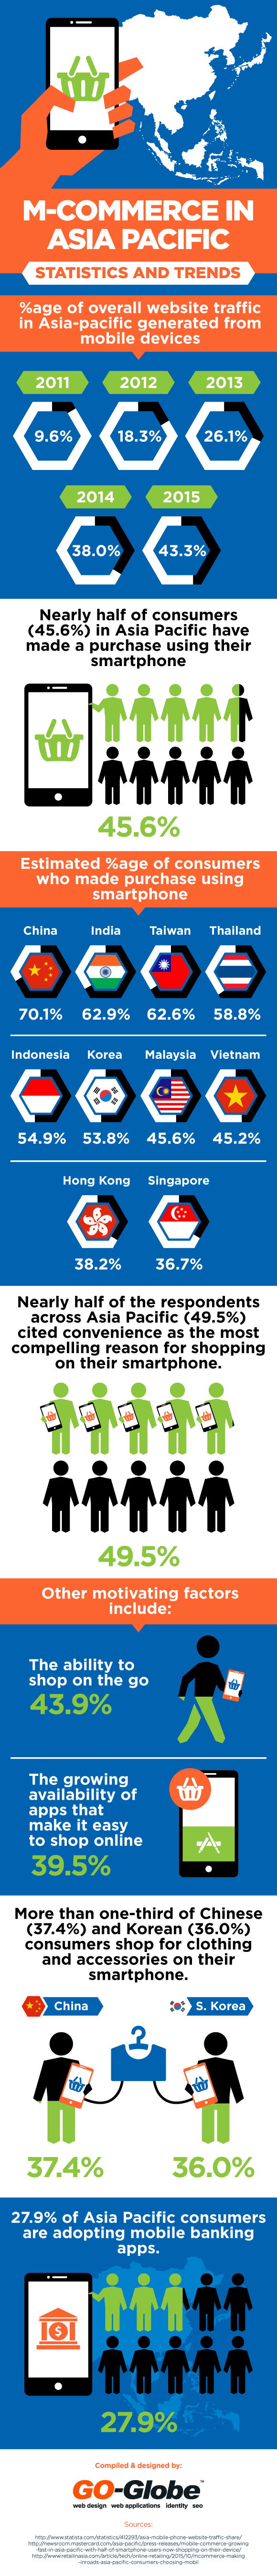 Chinese m-commerce vs. Asia Pacific